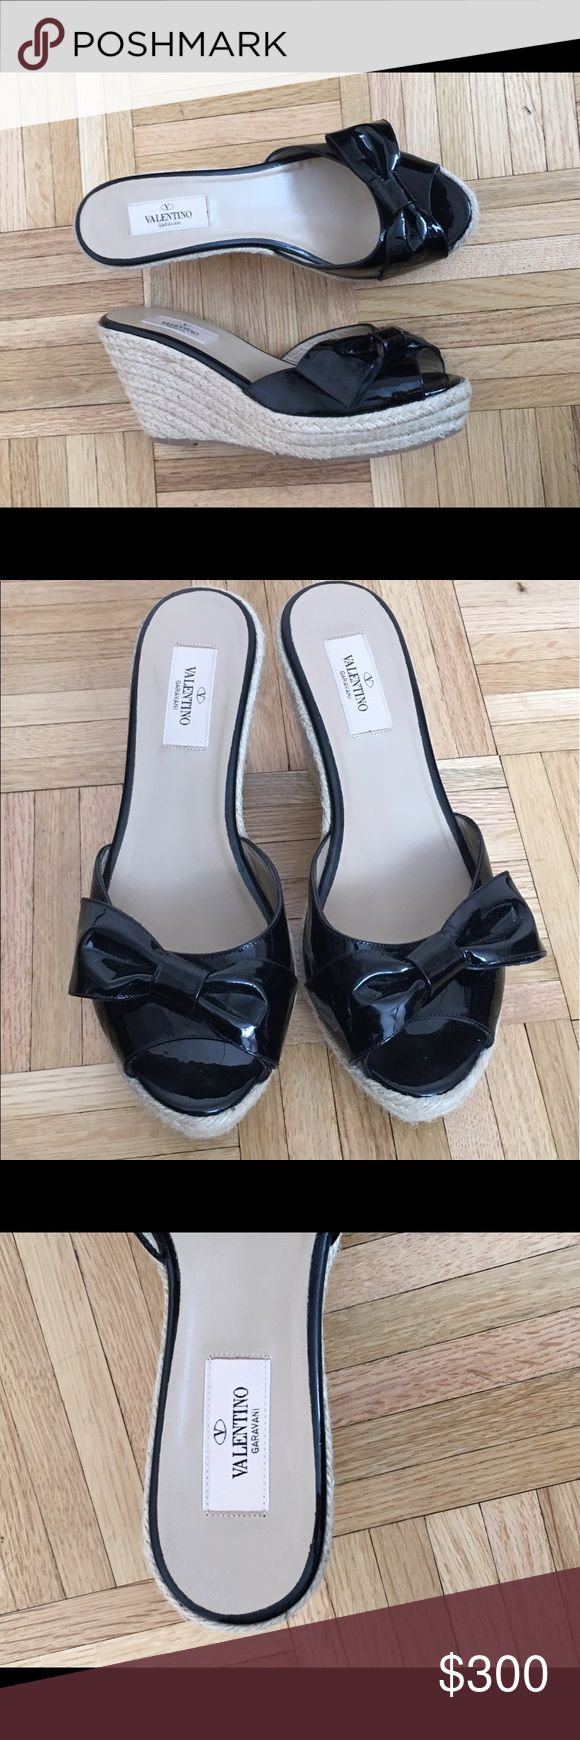 Valentino Wedges- worn once Woven wedge, black patent leather strap around toes, and bow, 3 1/4 in heel, worn once Valentino Shoes Wedges